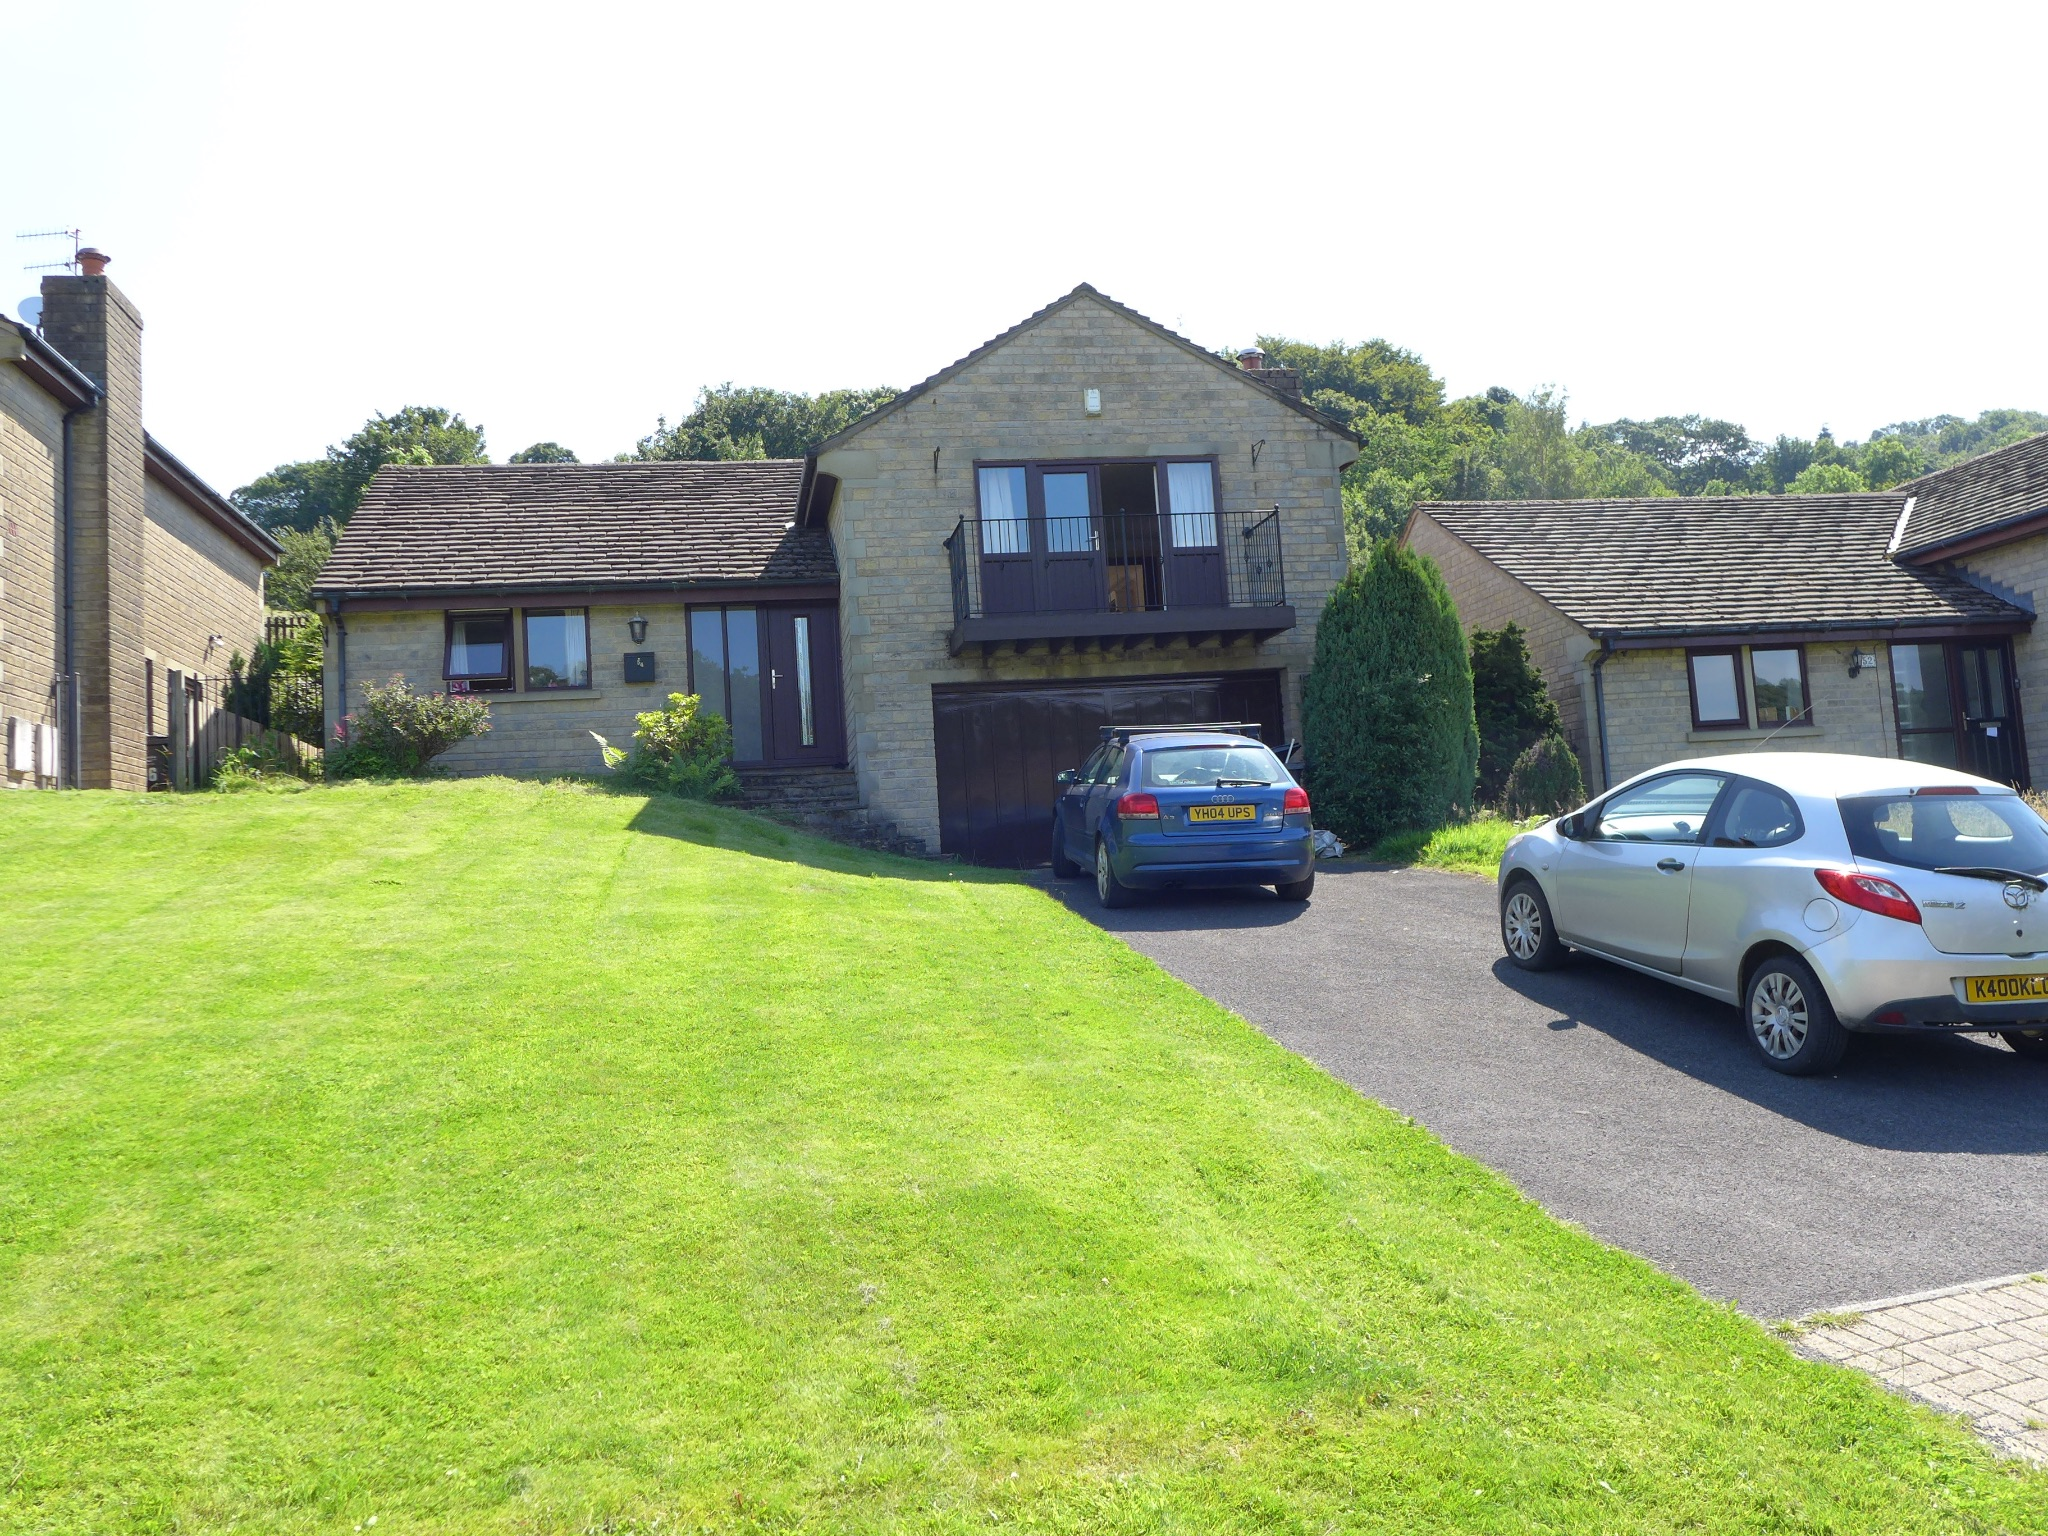 4 bedroom detached house For Sale in Todmorden - Photograph 1.